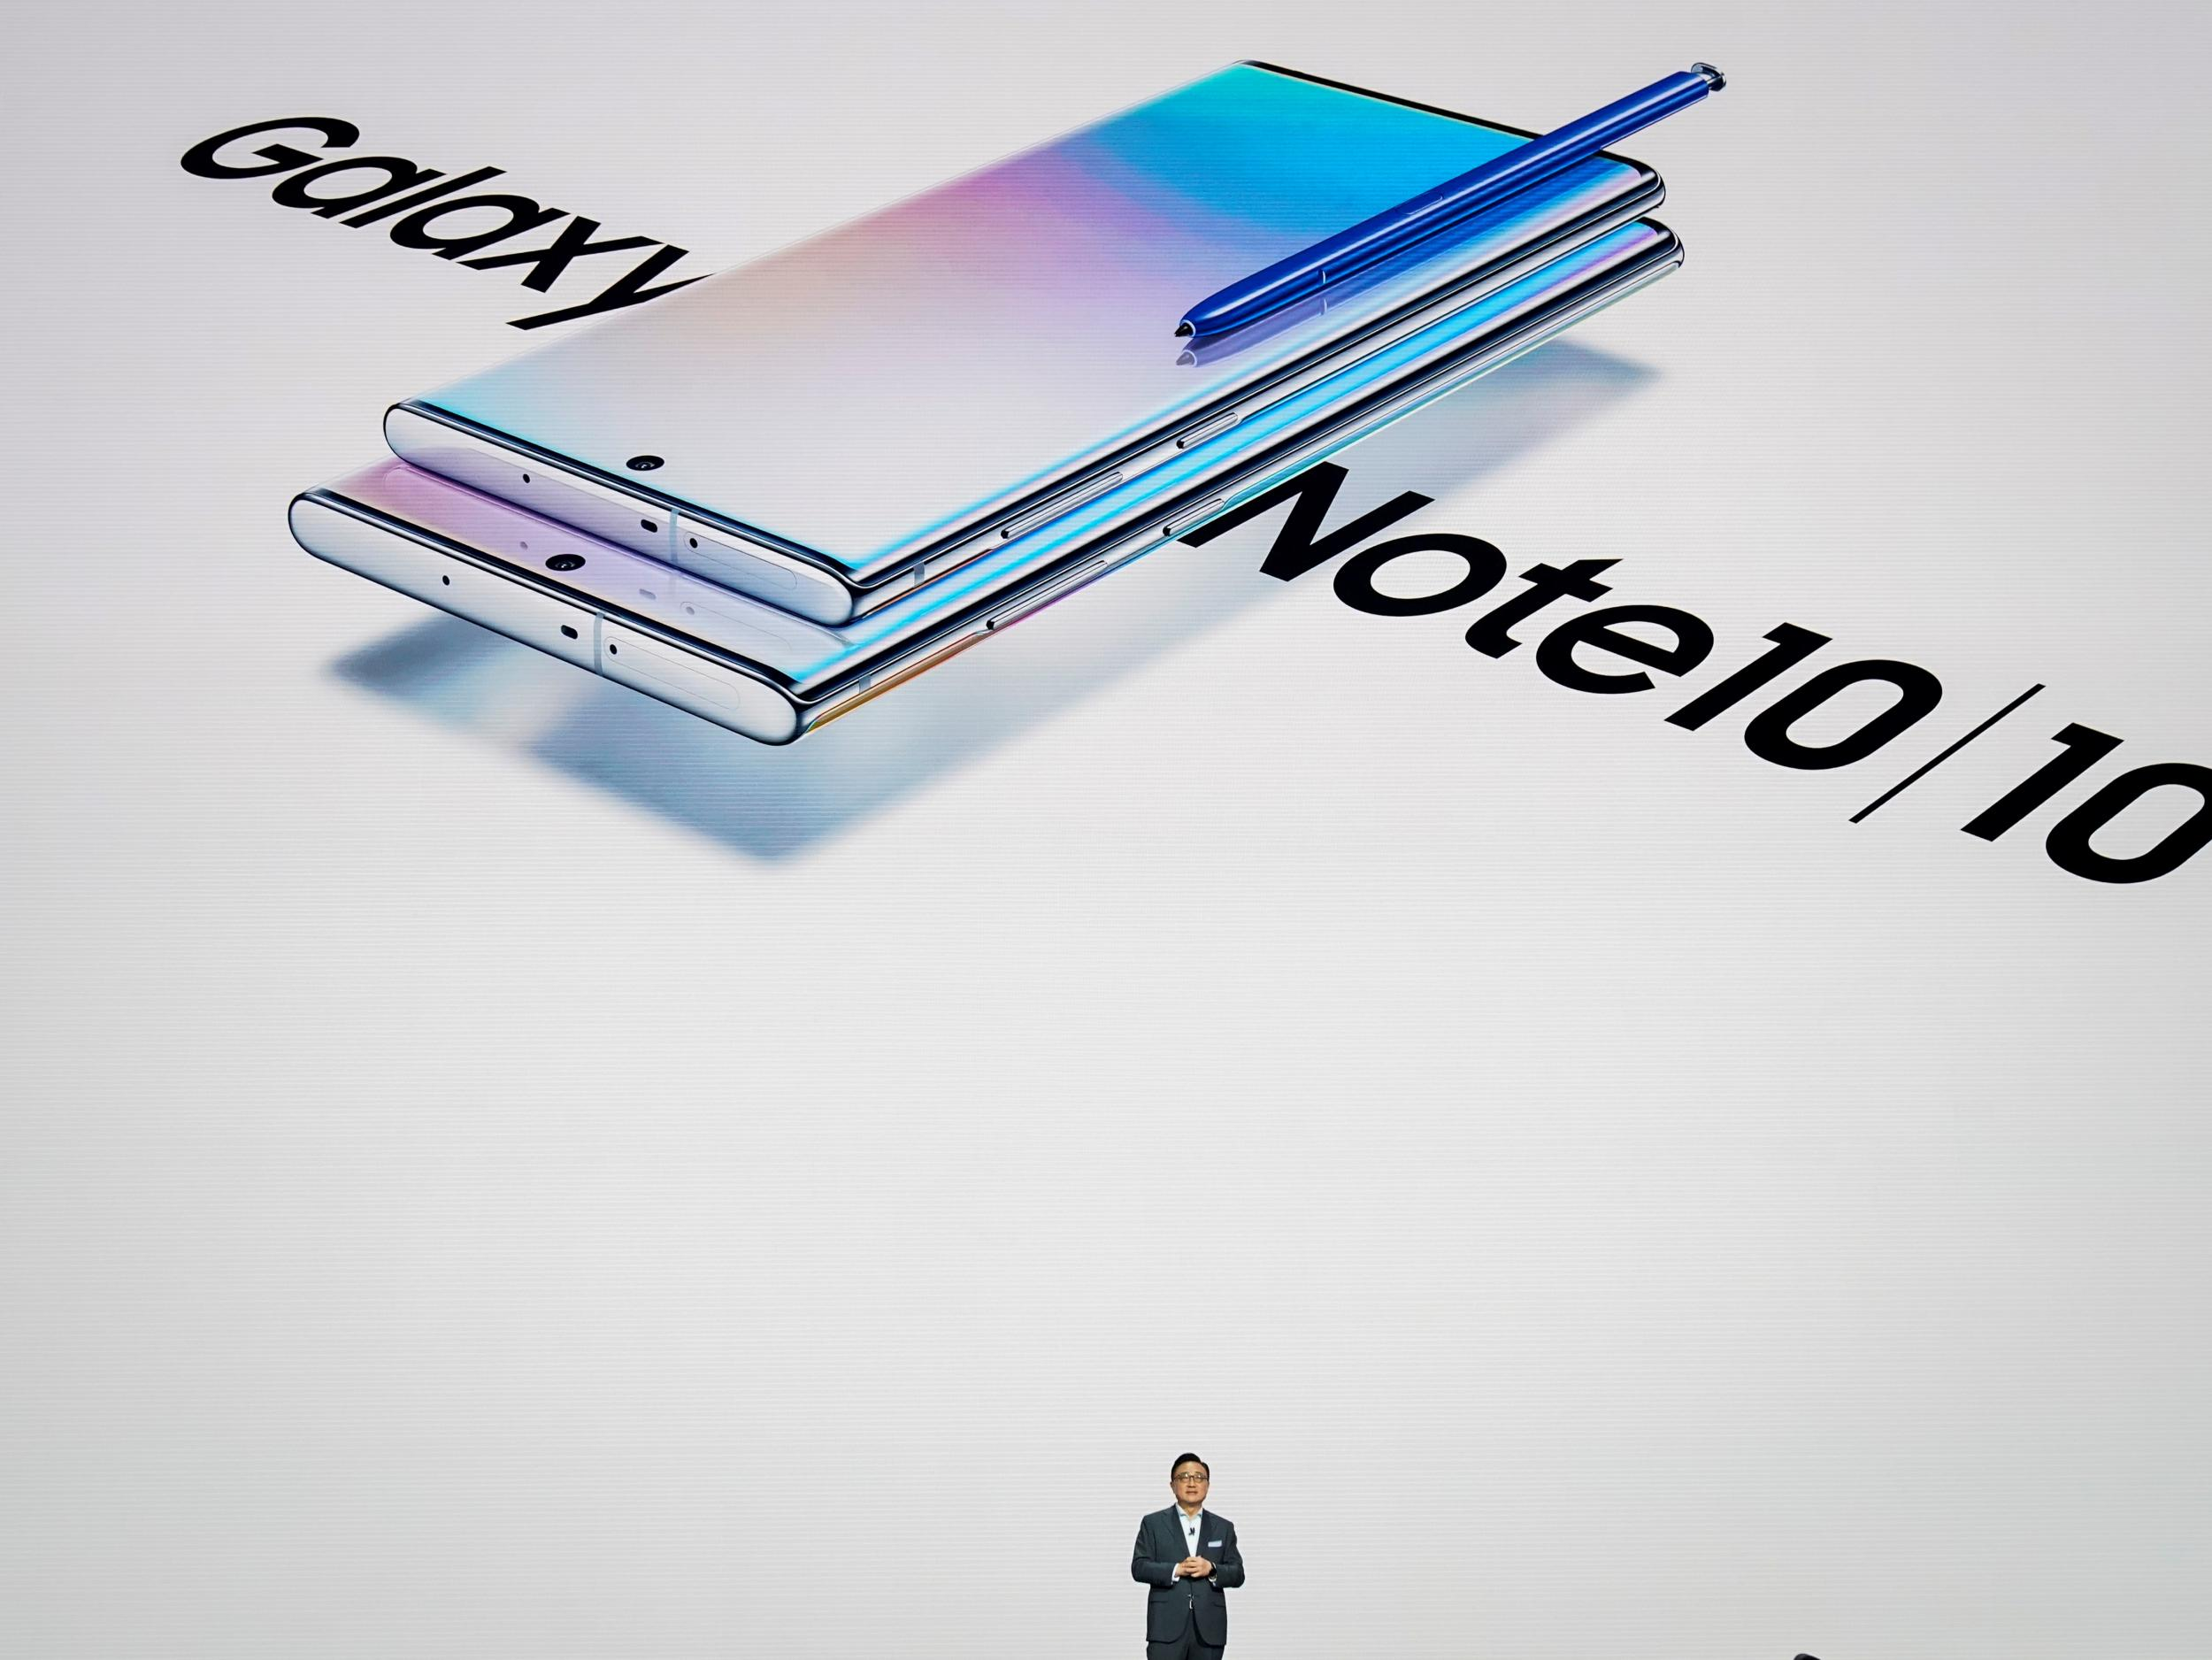 Galaxy Note 10: Samsung ignores two key areas with new phones – Best